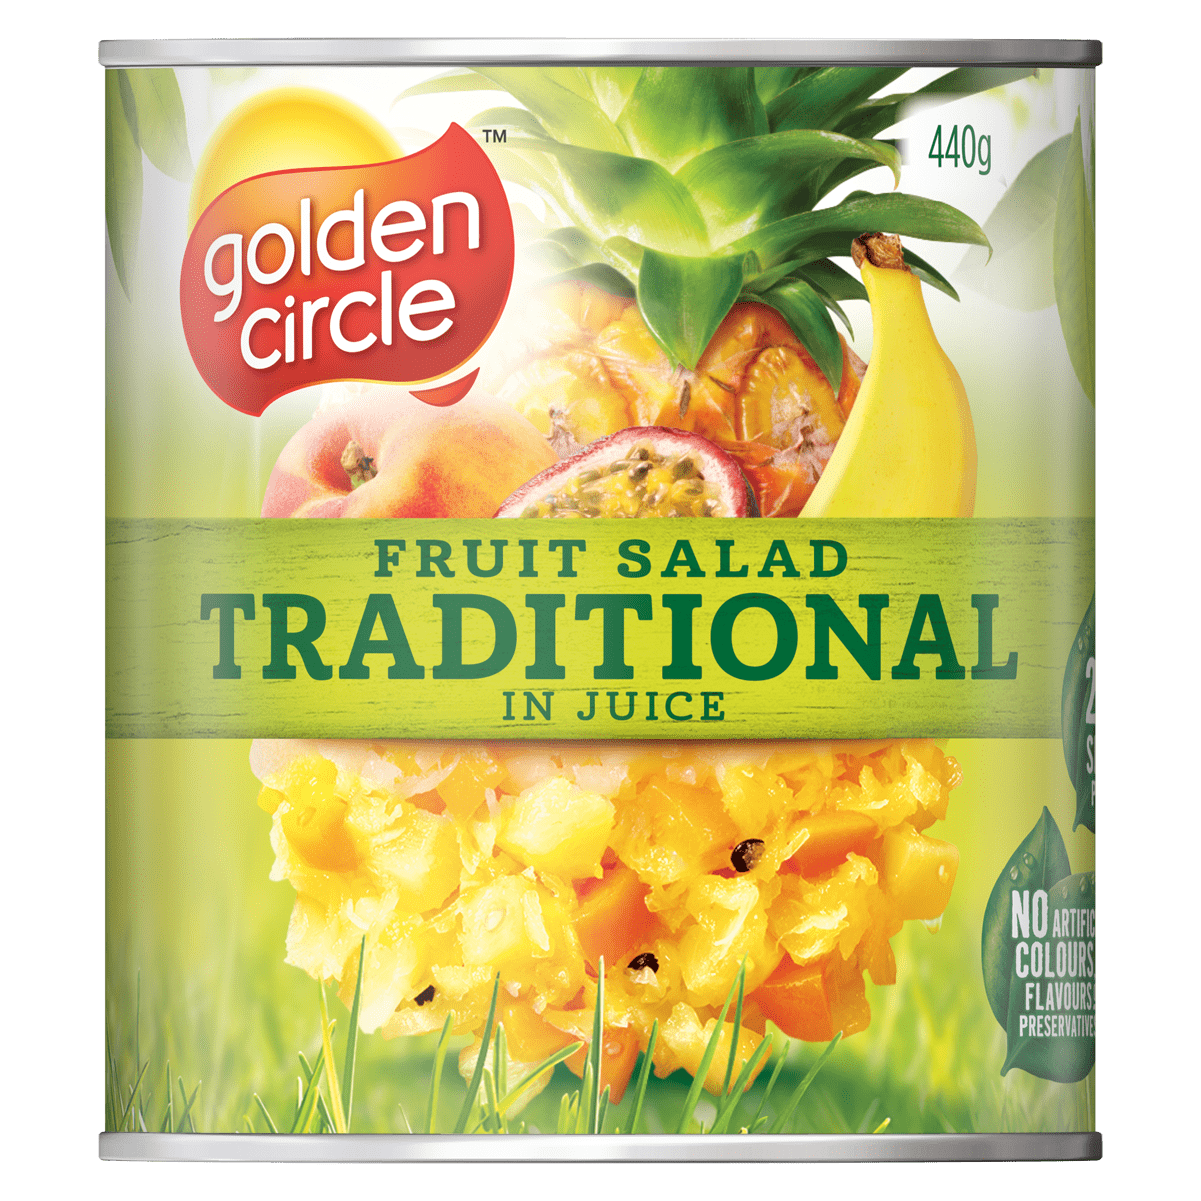 Tropical Traditional in Juice 440g image